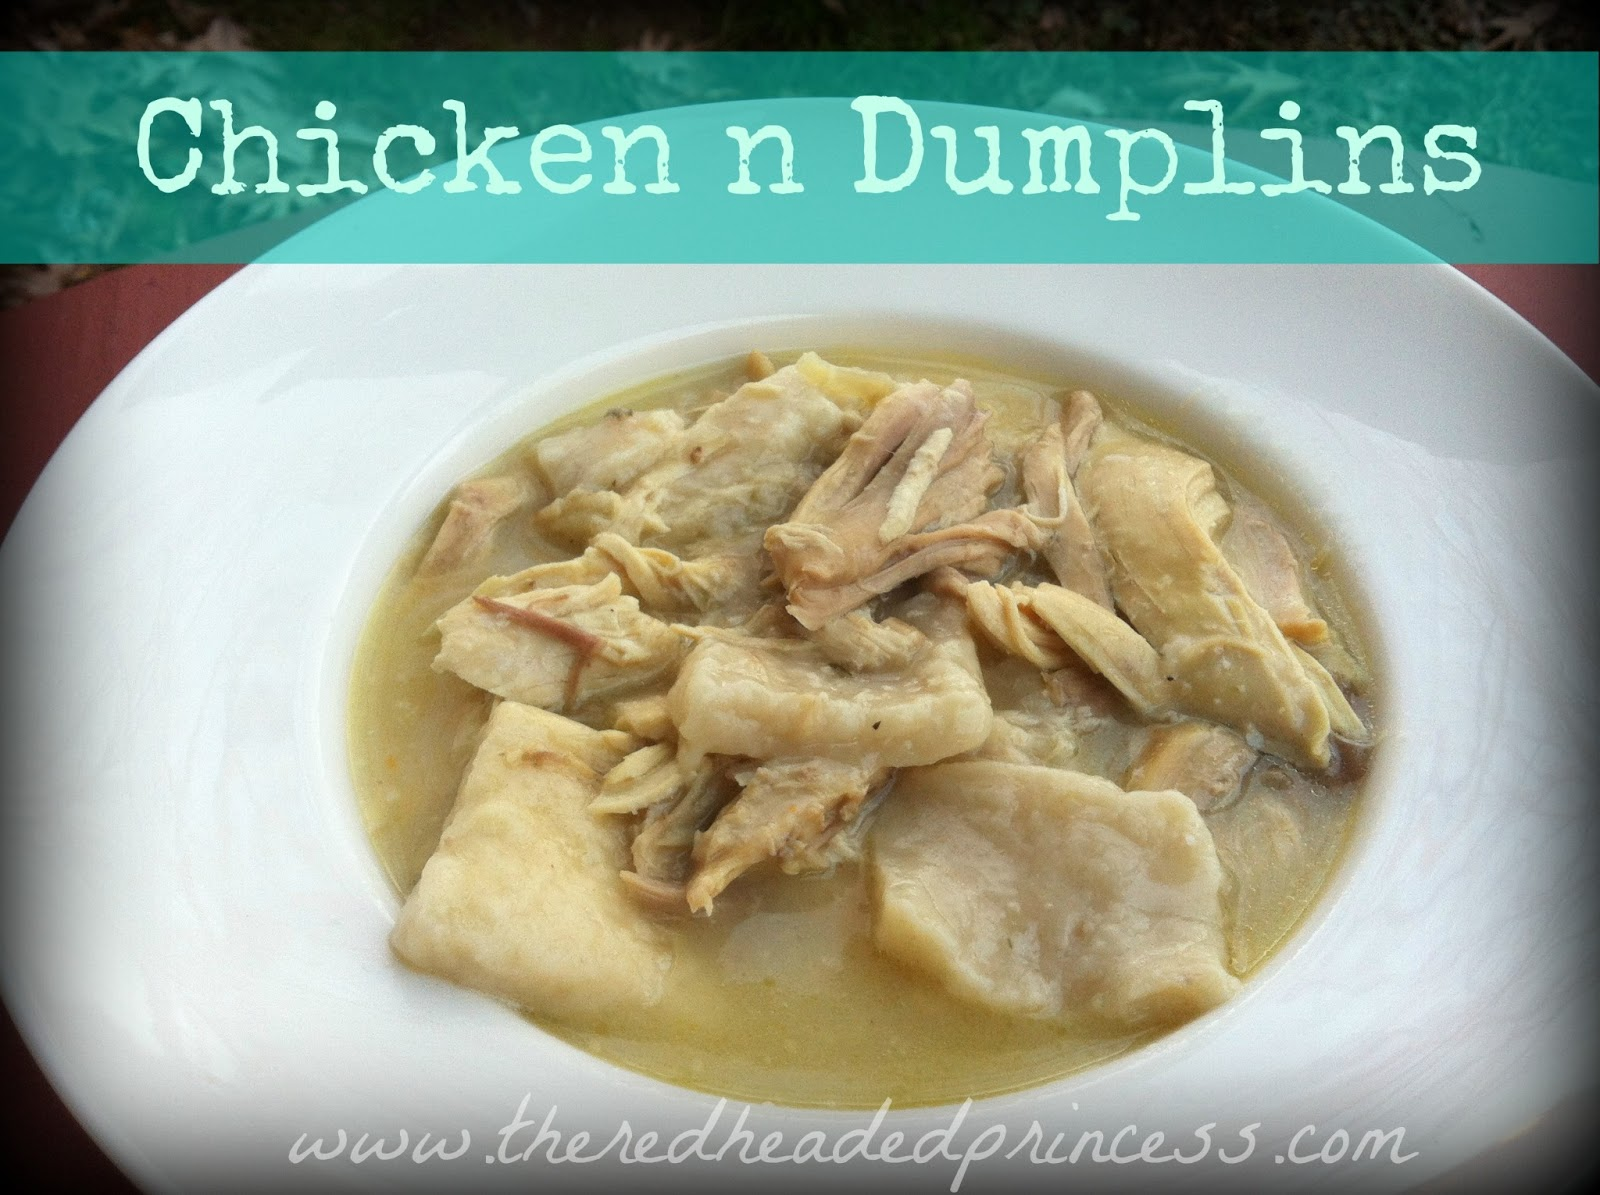 Chicken n Dumplins